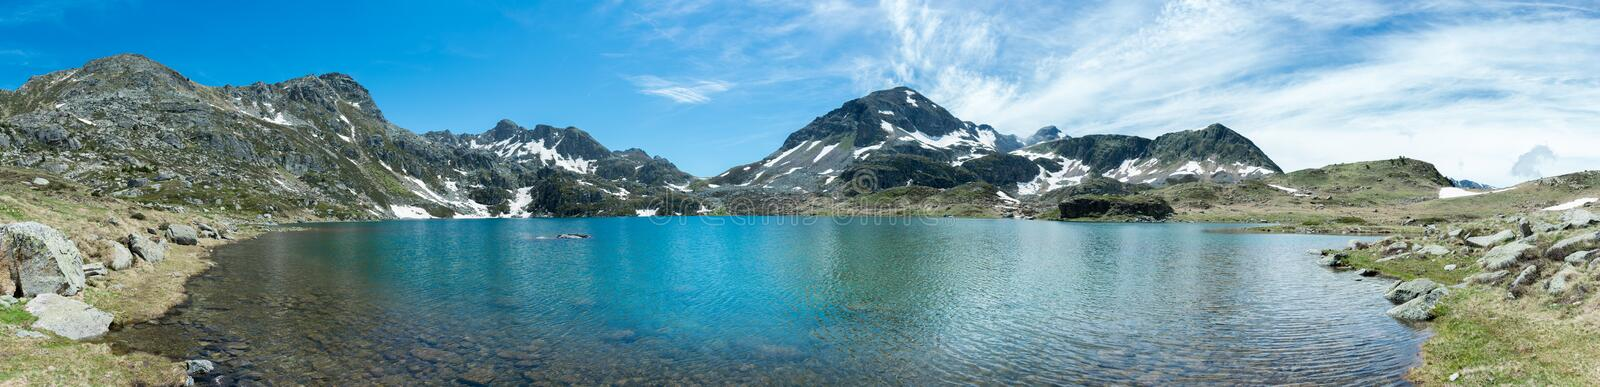 Panoramic view of Les Etangs de Fontargente in the French Pyrenees stock photography